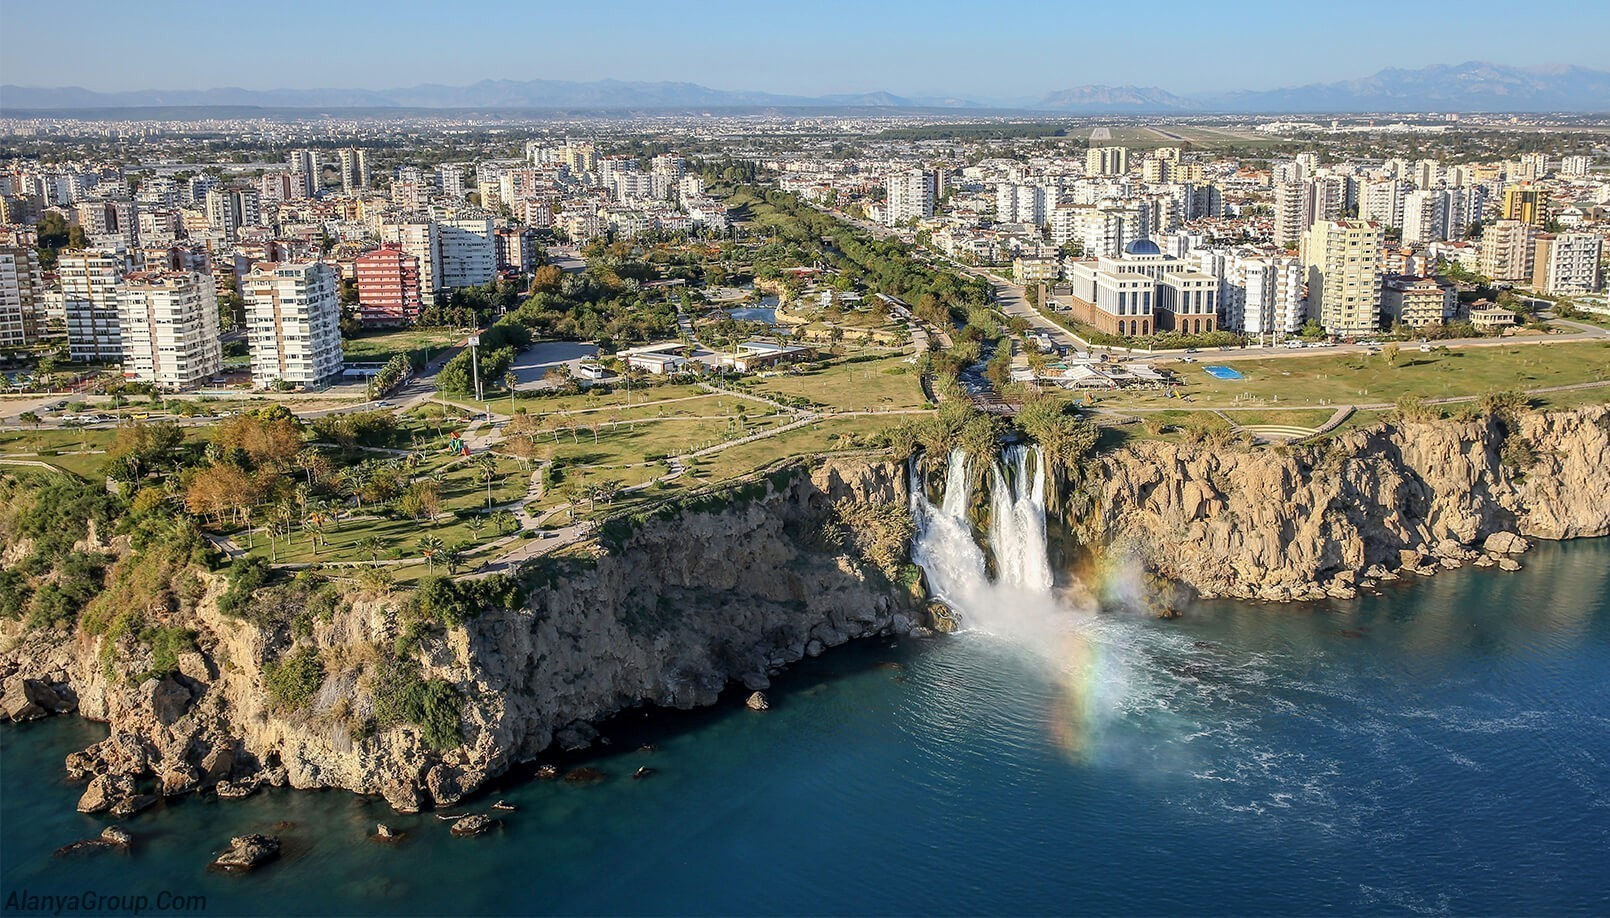 Antalya Duden Waterfall